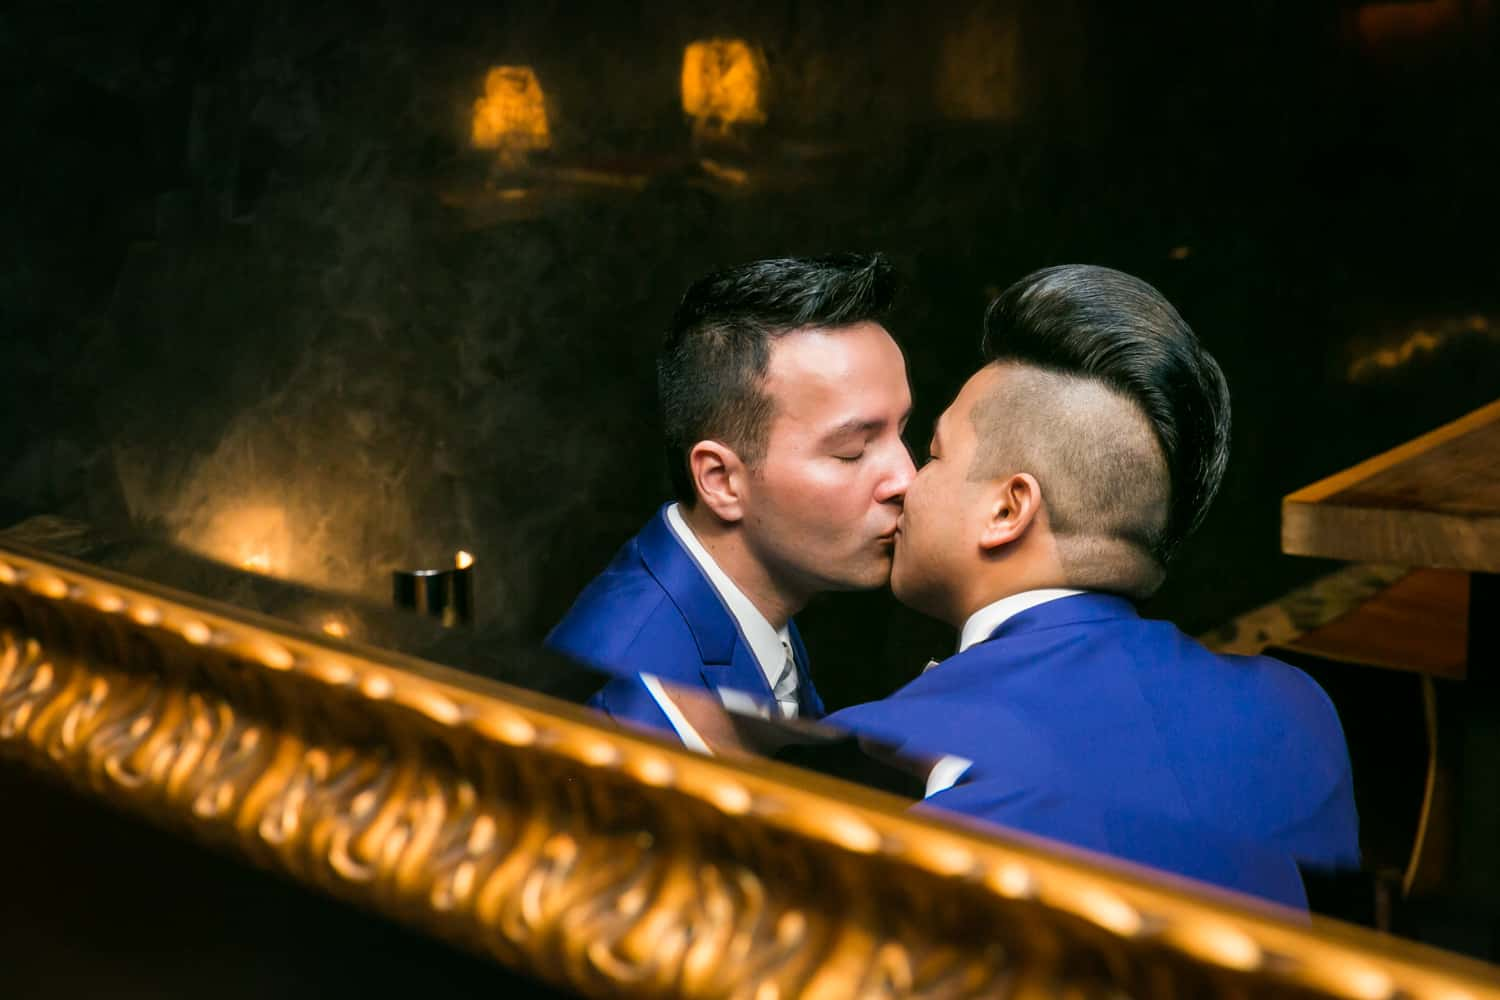 Reflection in mirror of two grooms kissing